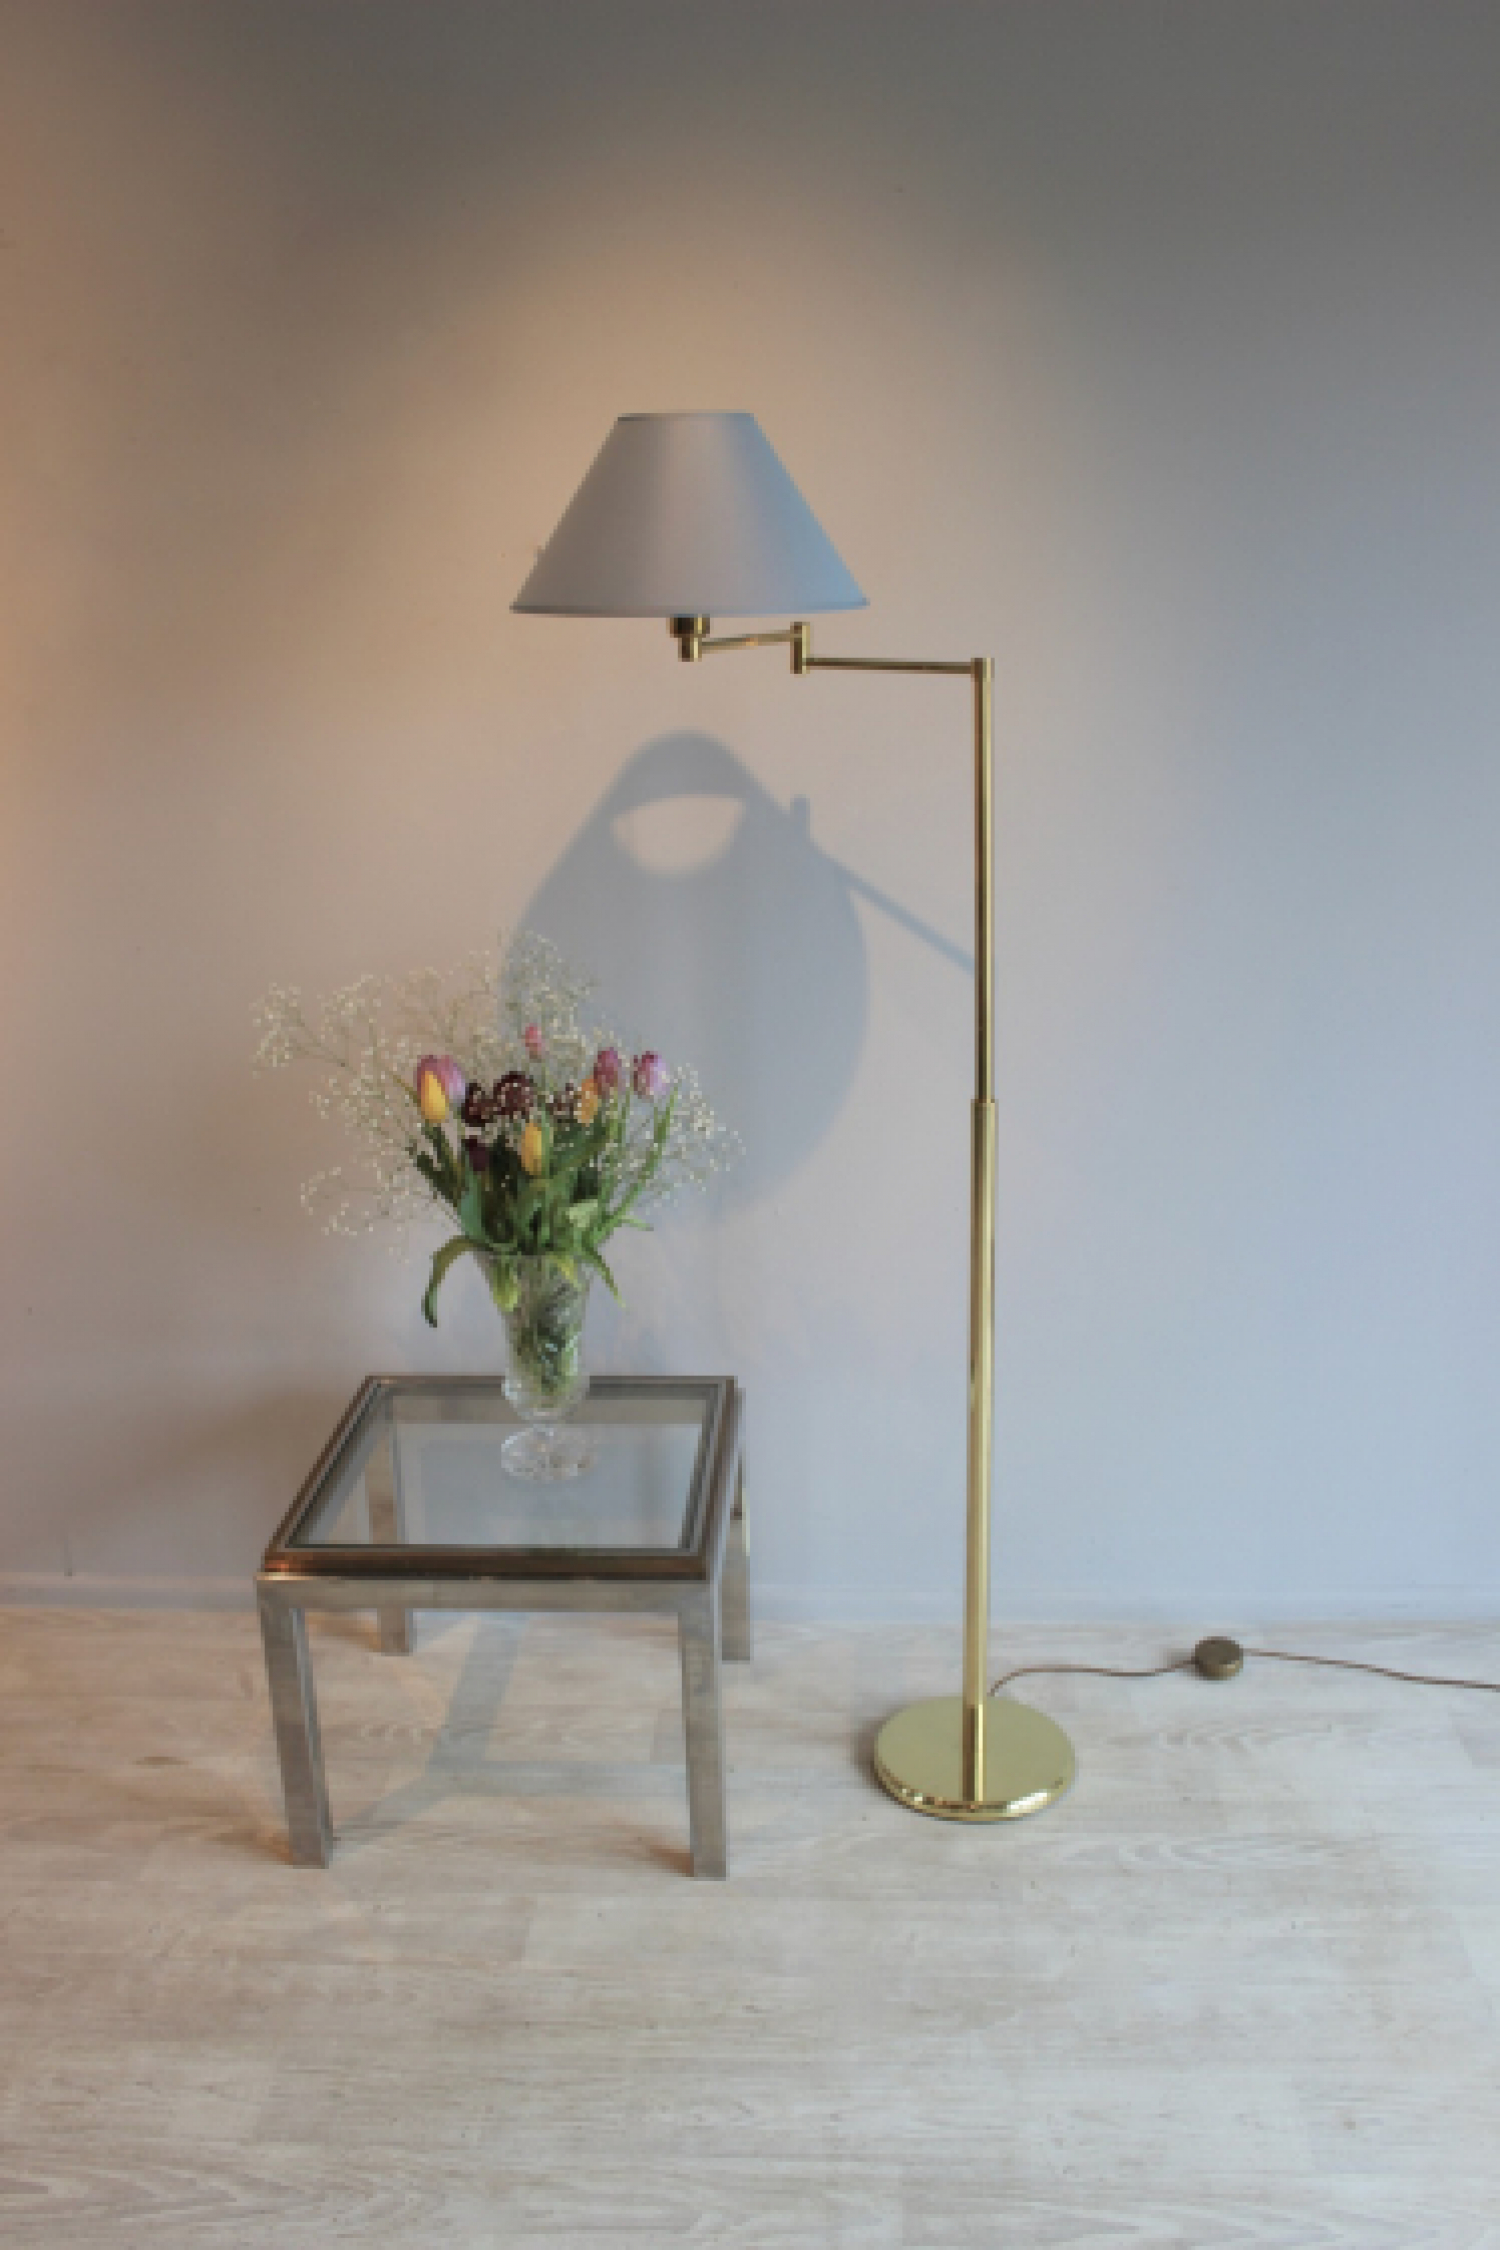 Antique lighting - reading and floor lamps for Christmas - image 6